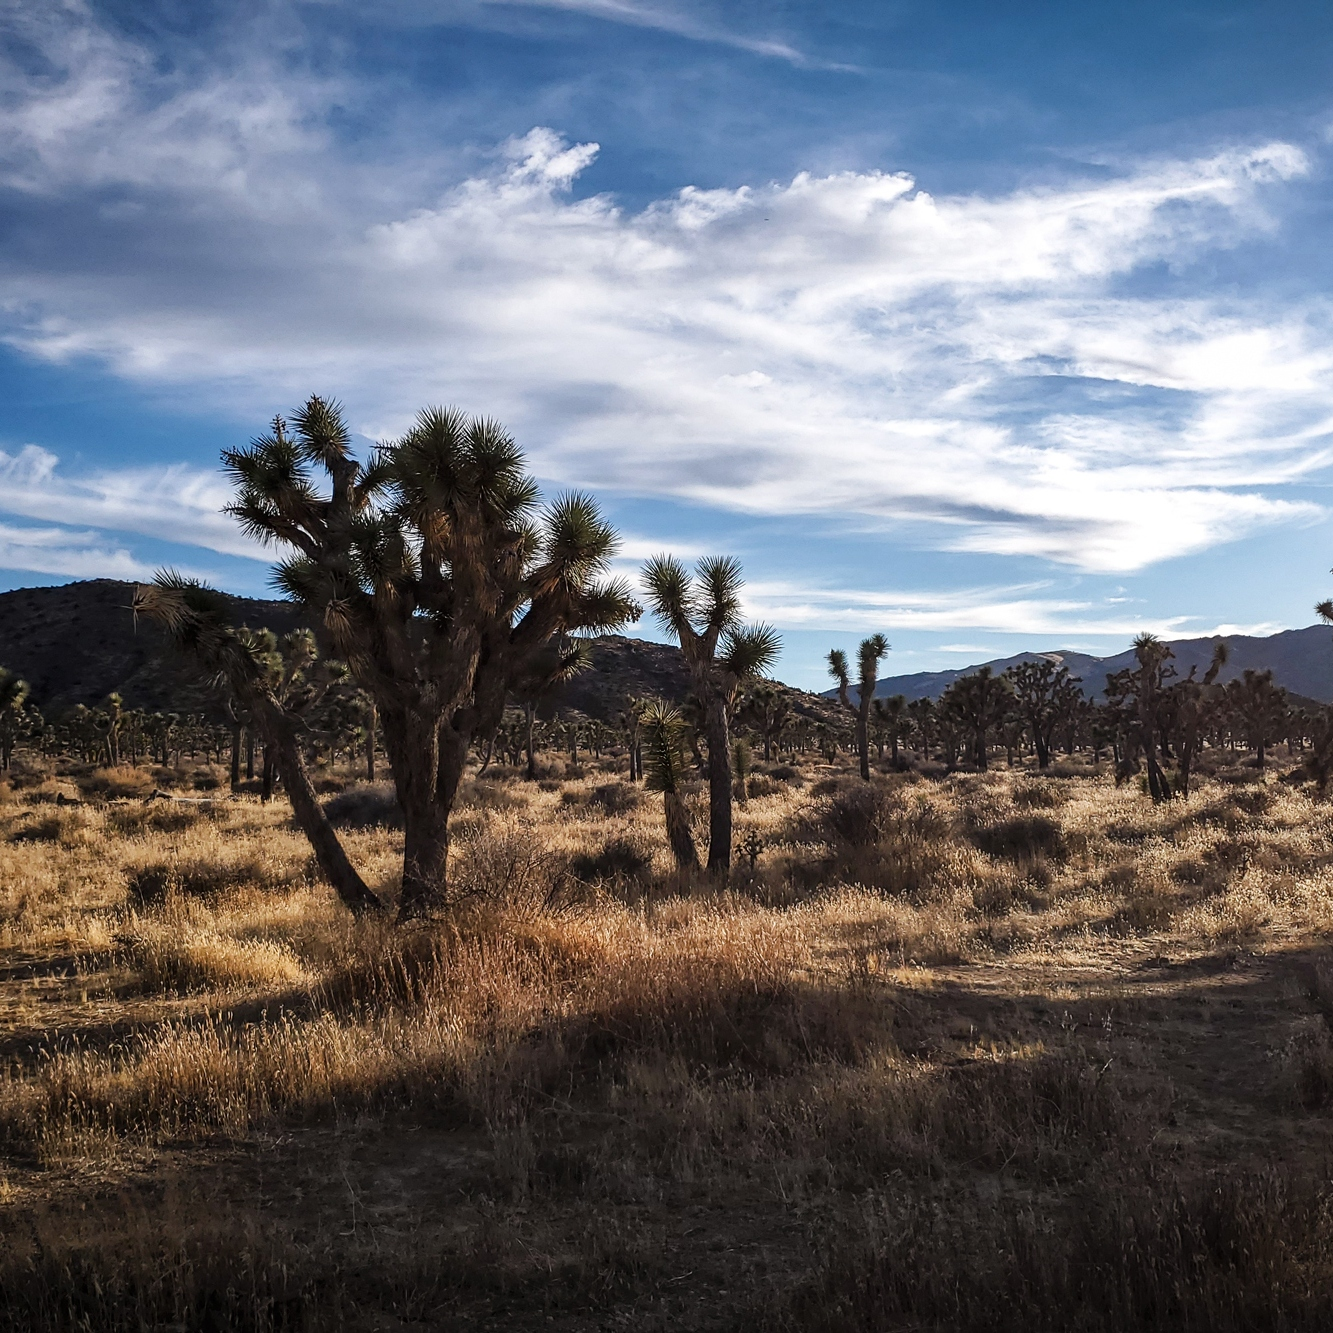 the sunlight glowing over the dry grasses and joshua trees